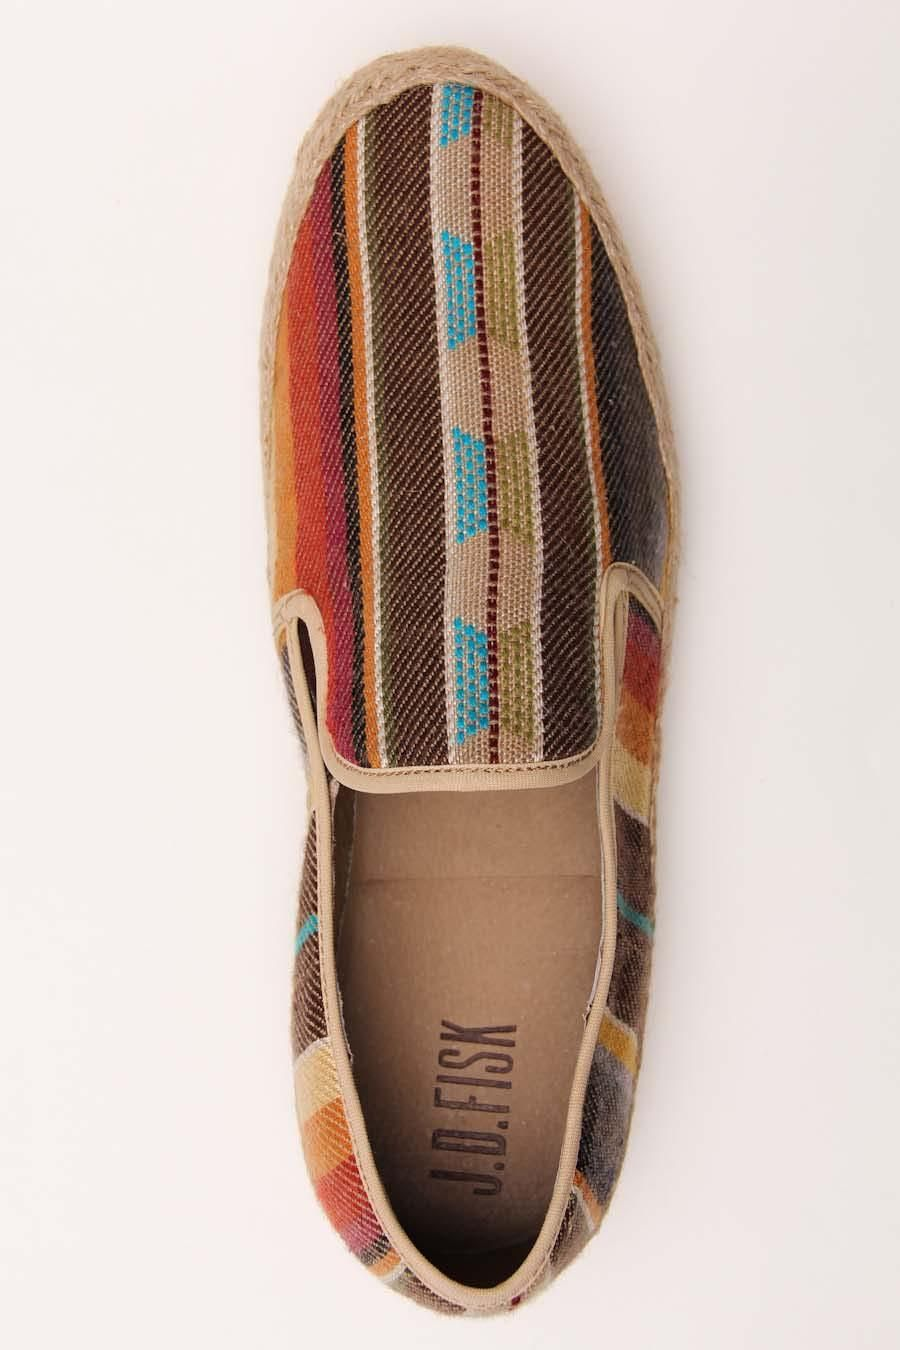 size 40 2d40c 84a1e navajo slider Jack Threads, Fashion Gallery, Everyday Shoes, Shoes  Sneakers, Sneakers Fashion